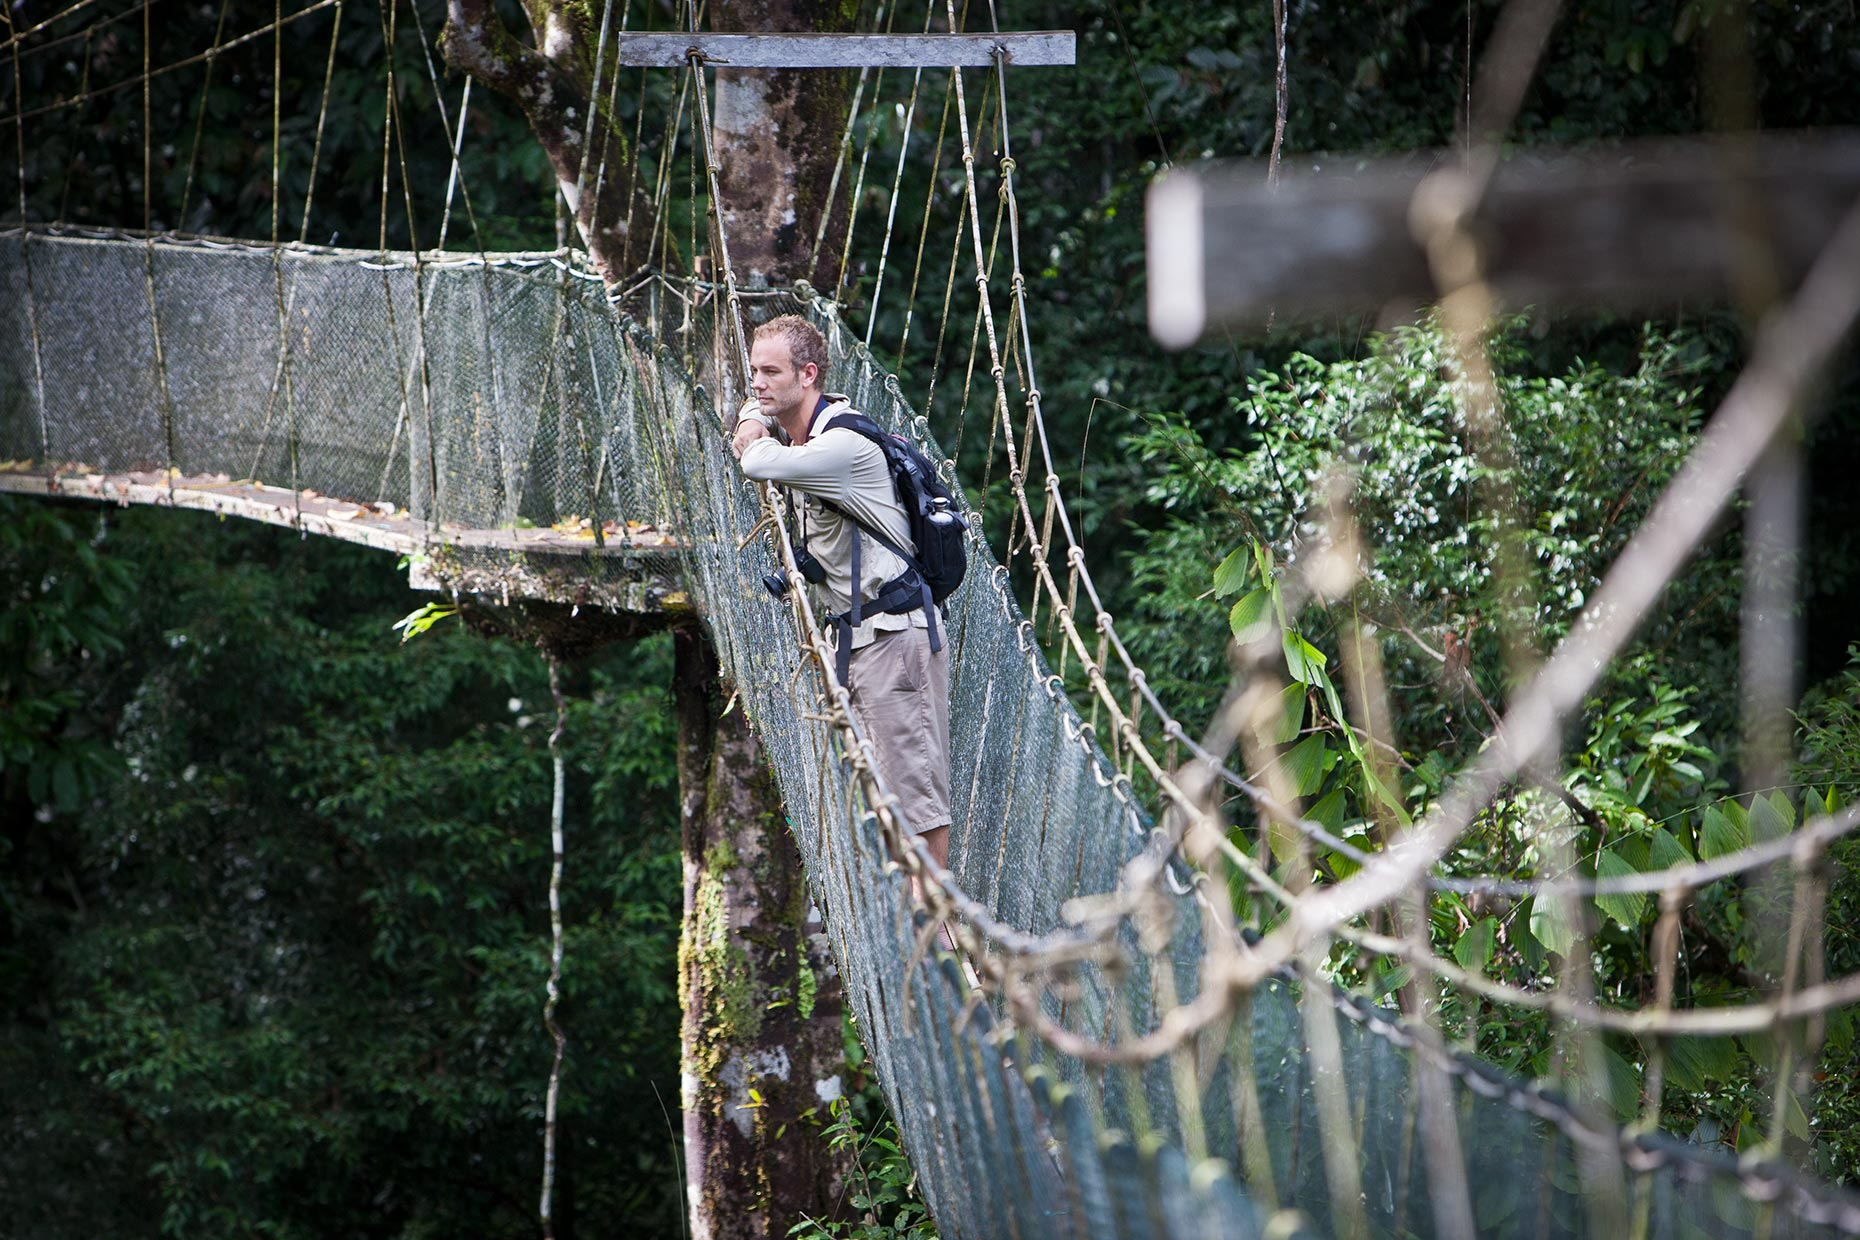 A young adventure tourist pauses on a swinign bridge to admire the view in Borneo